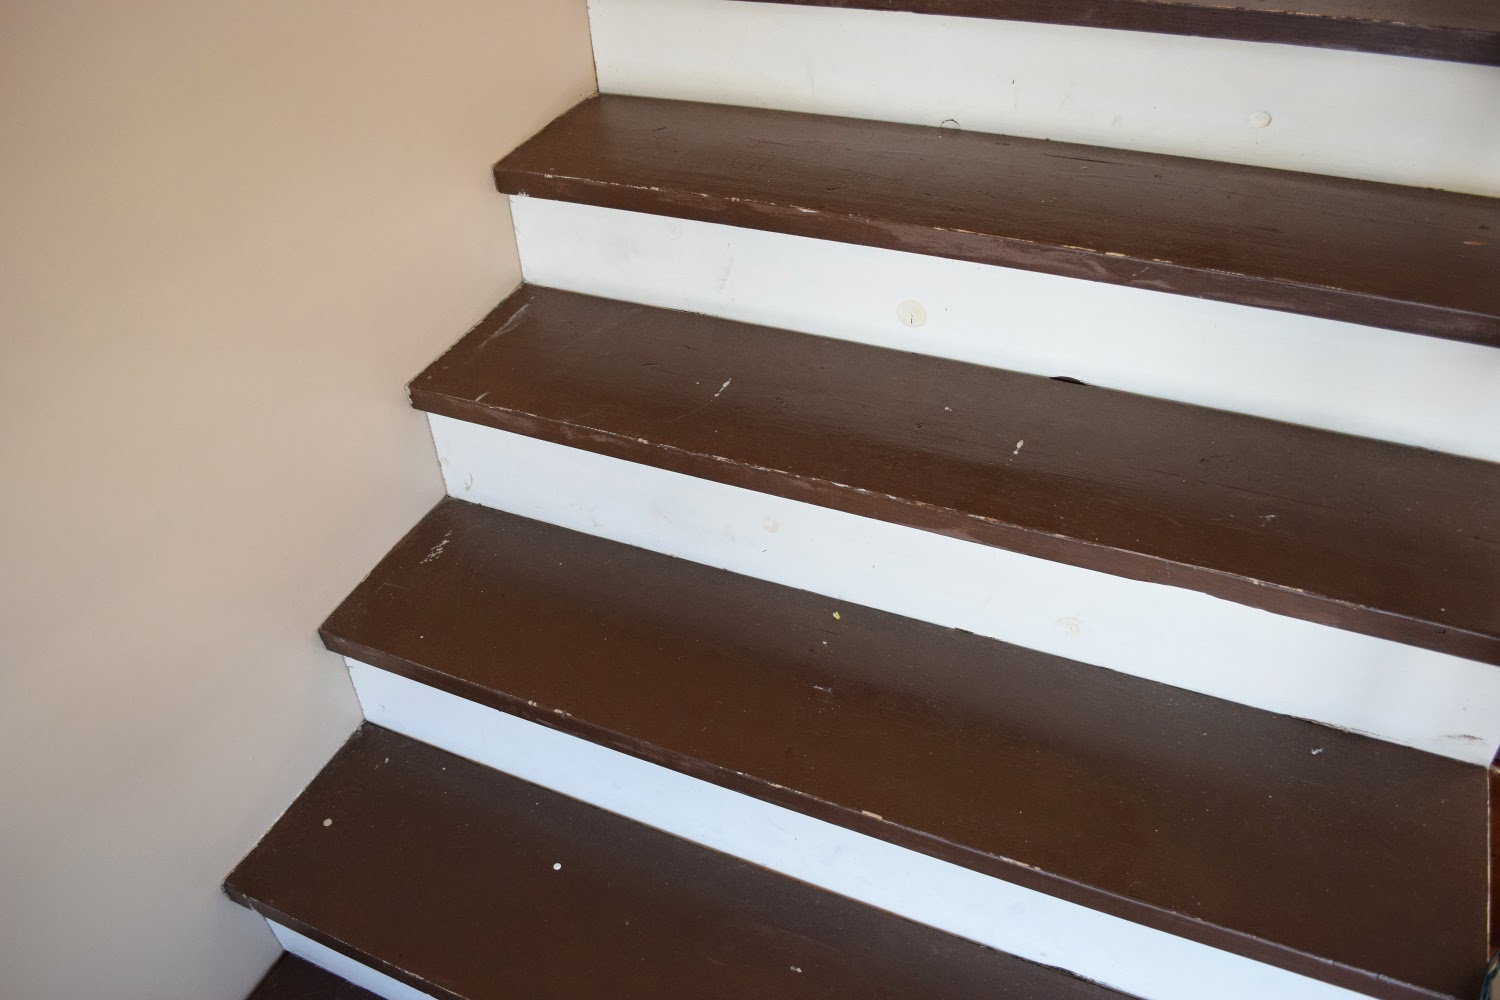 The Scuffed Paint Made Stairs Look Like They Were In A Perpetual State Of Needing Swept But I Ure You Had Just Been When Took These